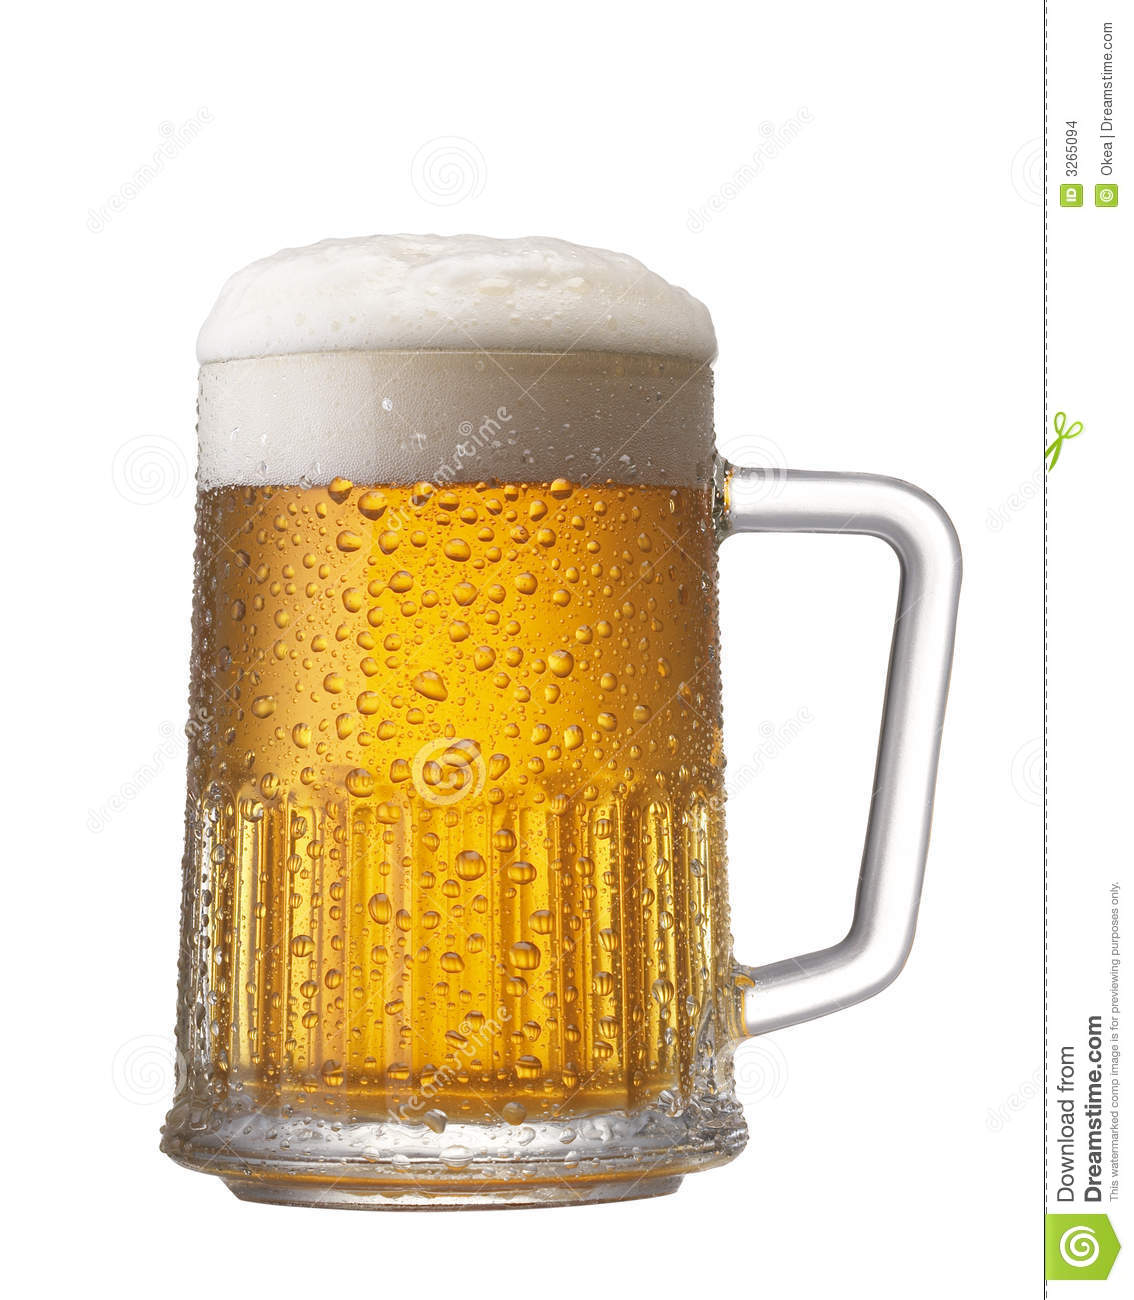 Cool white and red background - Mug Of Golden Beer With Frothy Head Against White Background